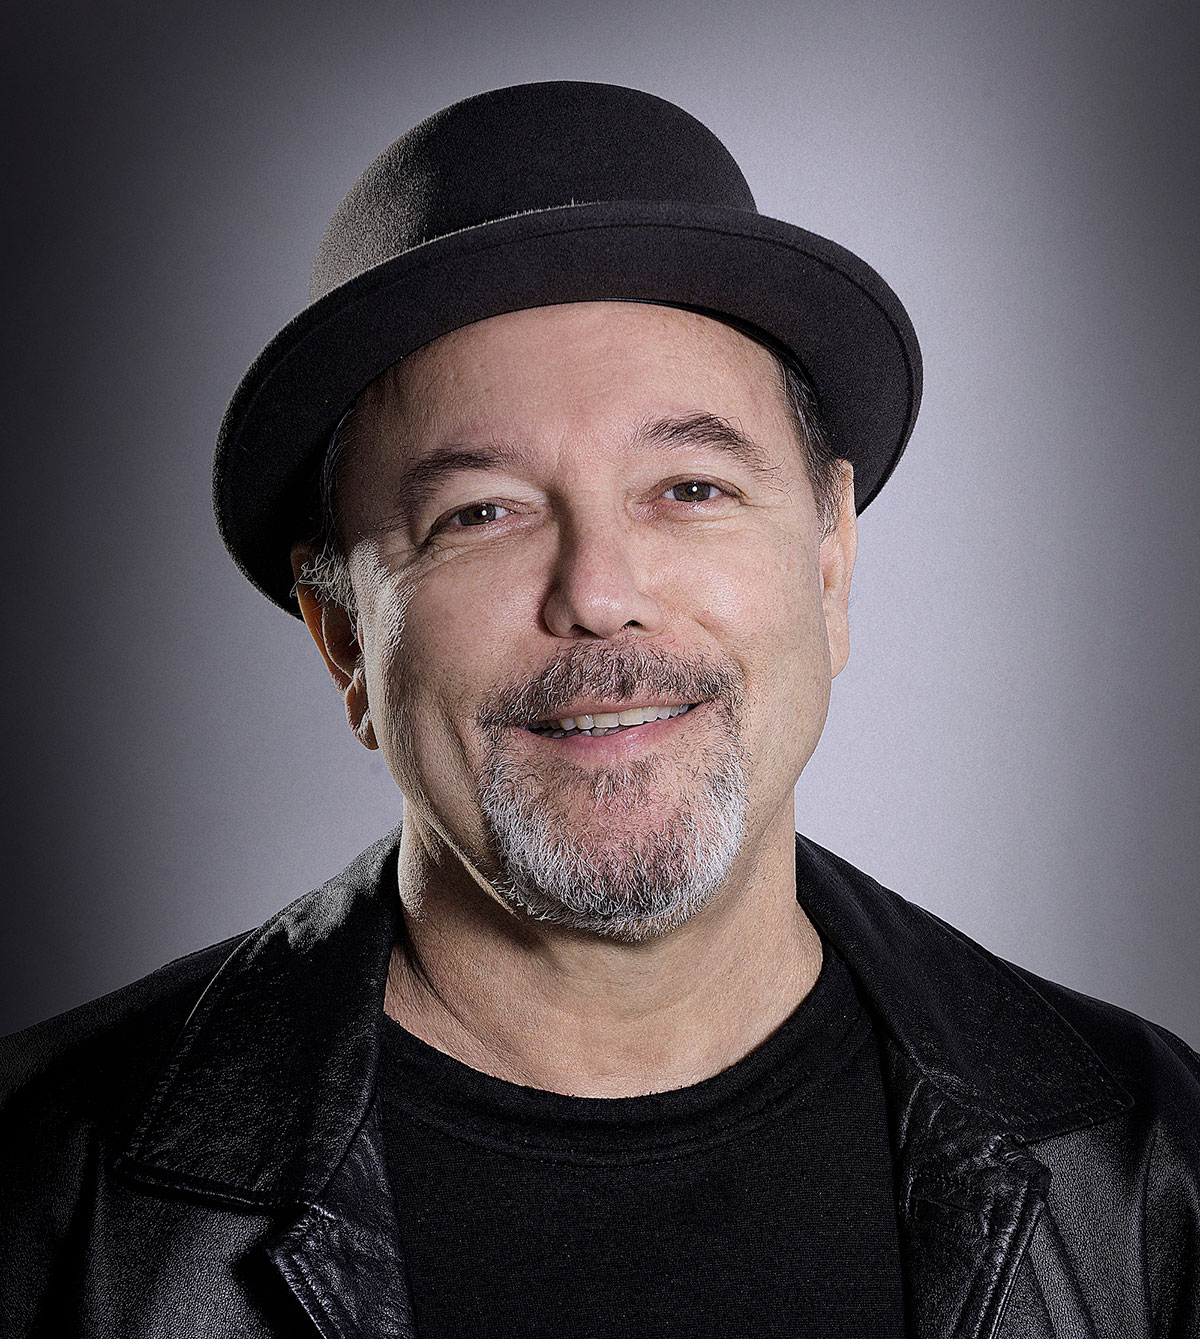 CHCI ANNOUNCES 41ST ANNUAL GALA TALENT, RUBÉN BLADES